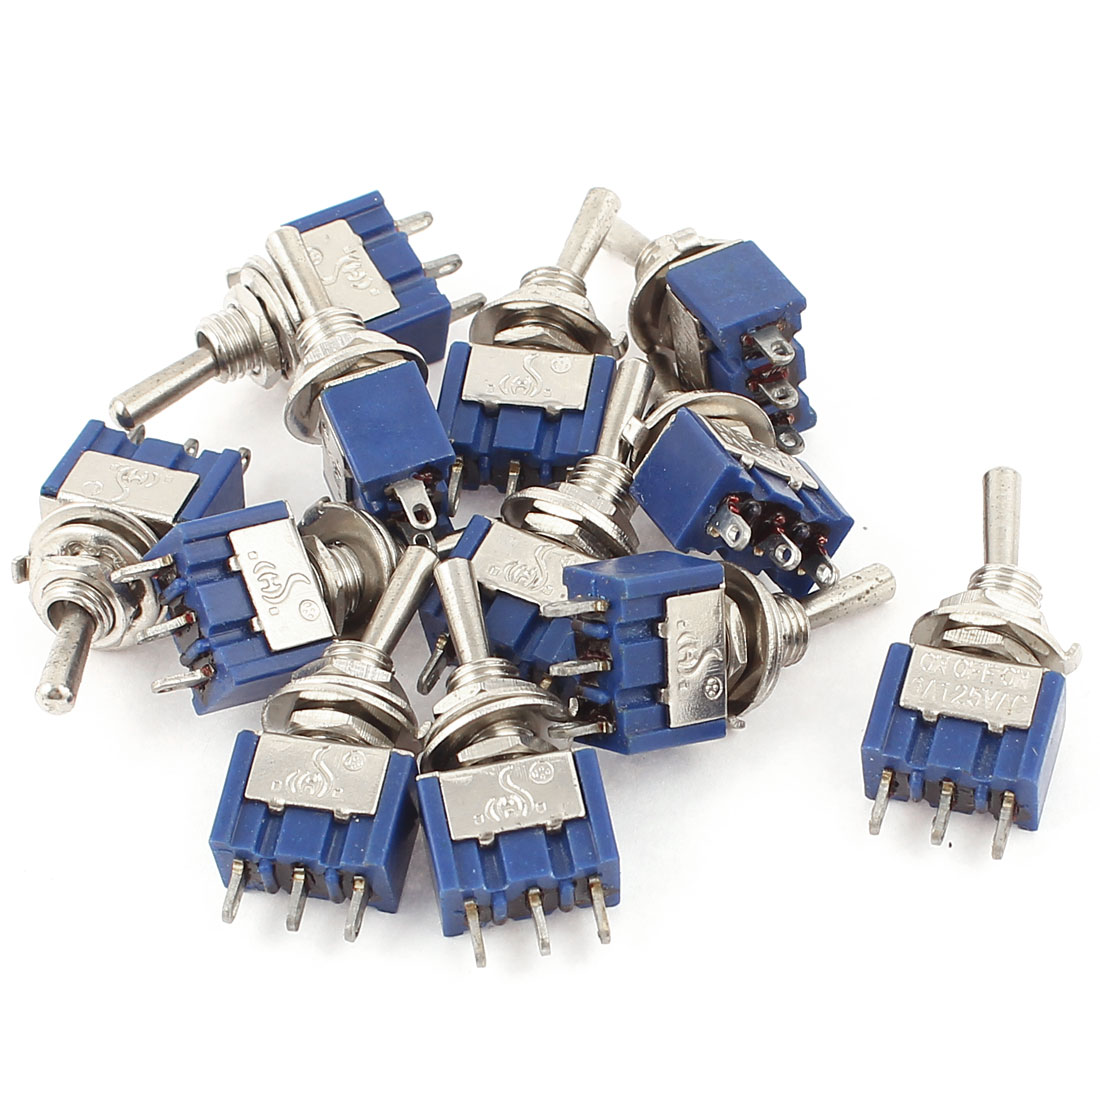 AC125V 6A SPDT ON-OFF-ON 3 Terminal Latching Miniature Toggle Switch 12pcs